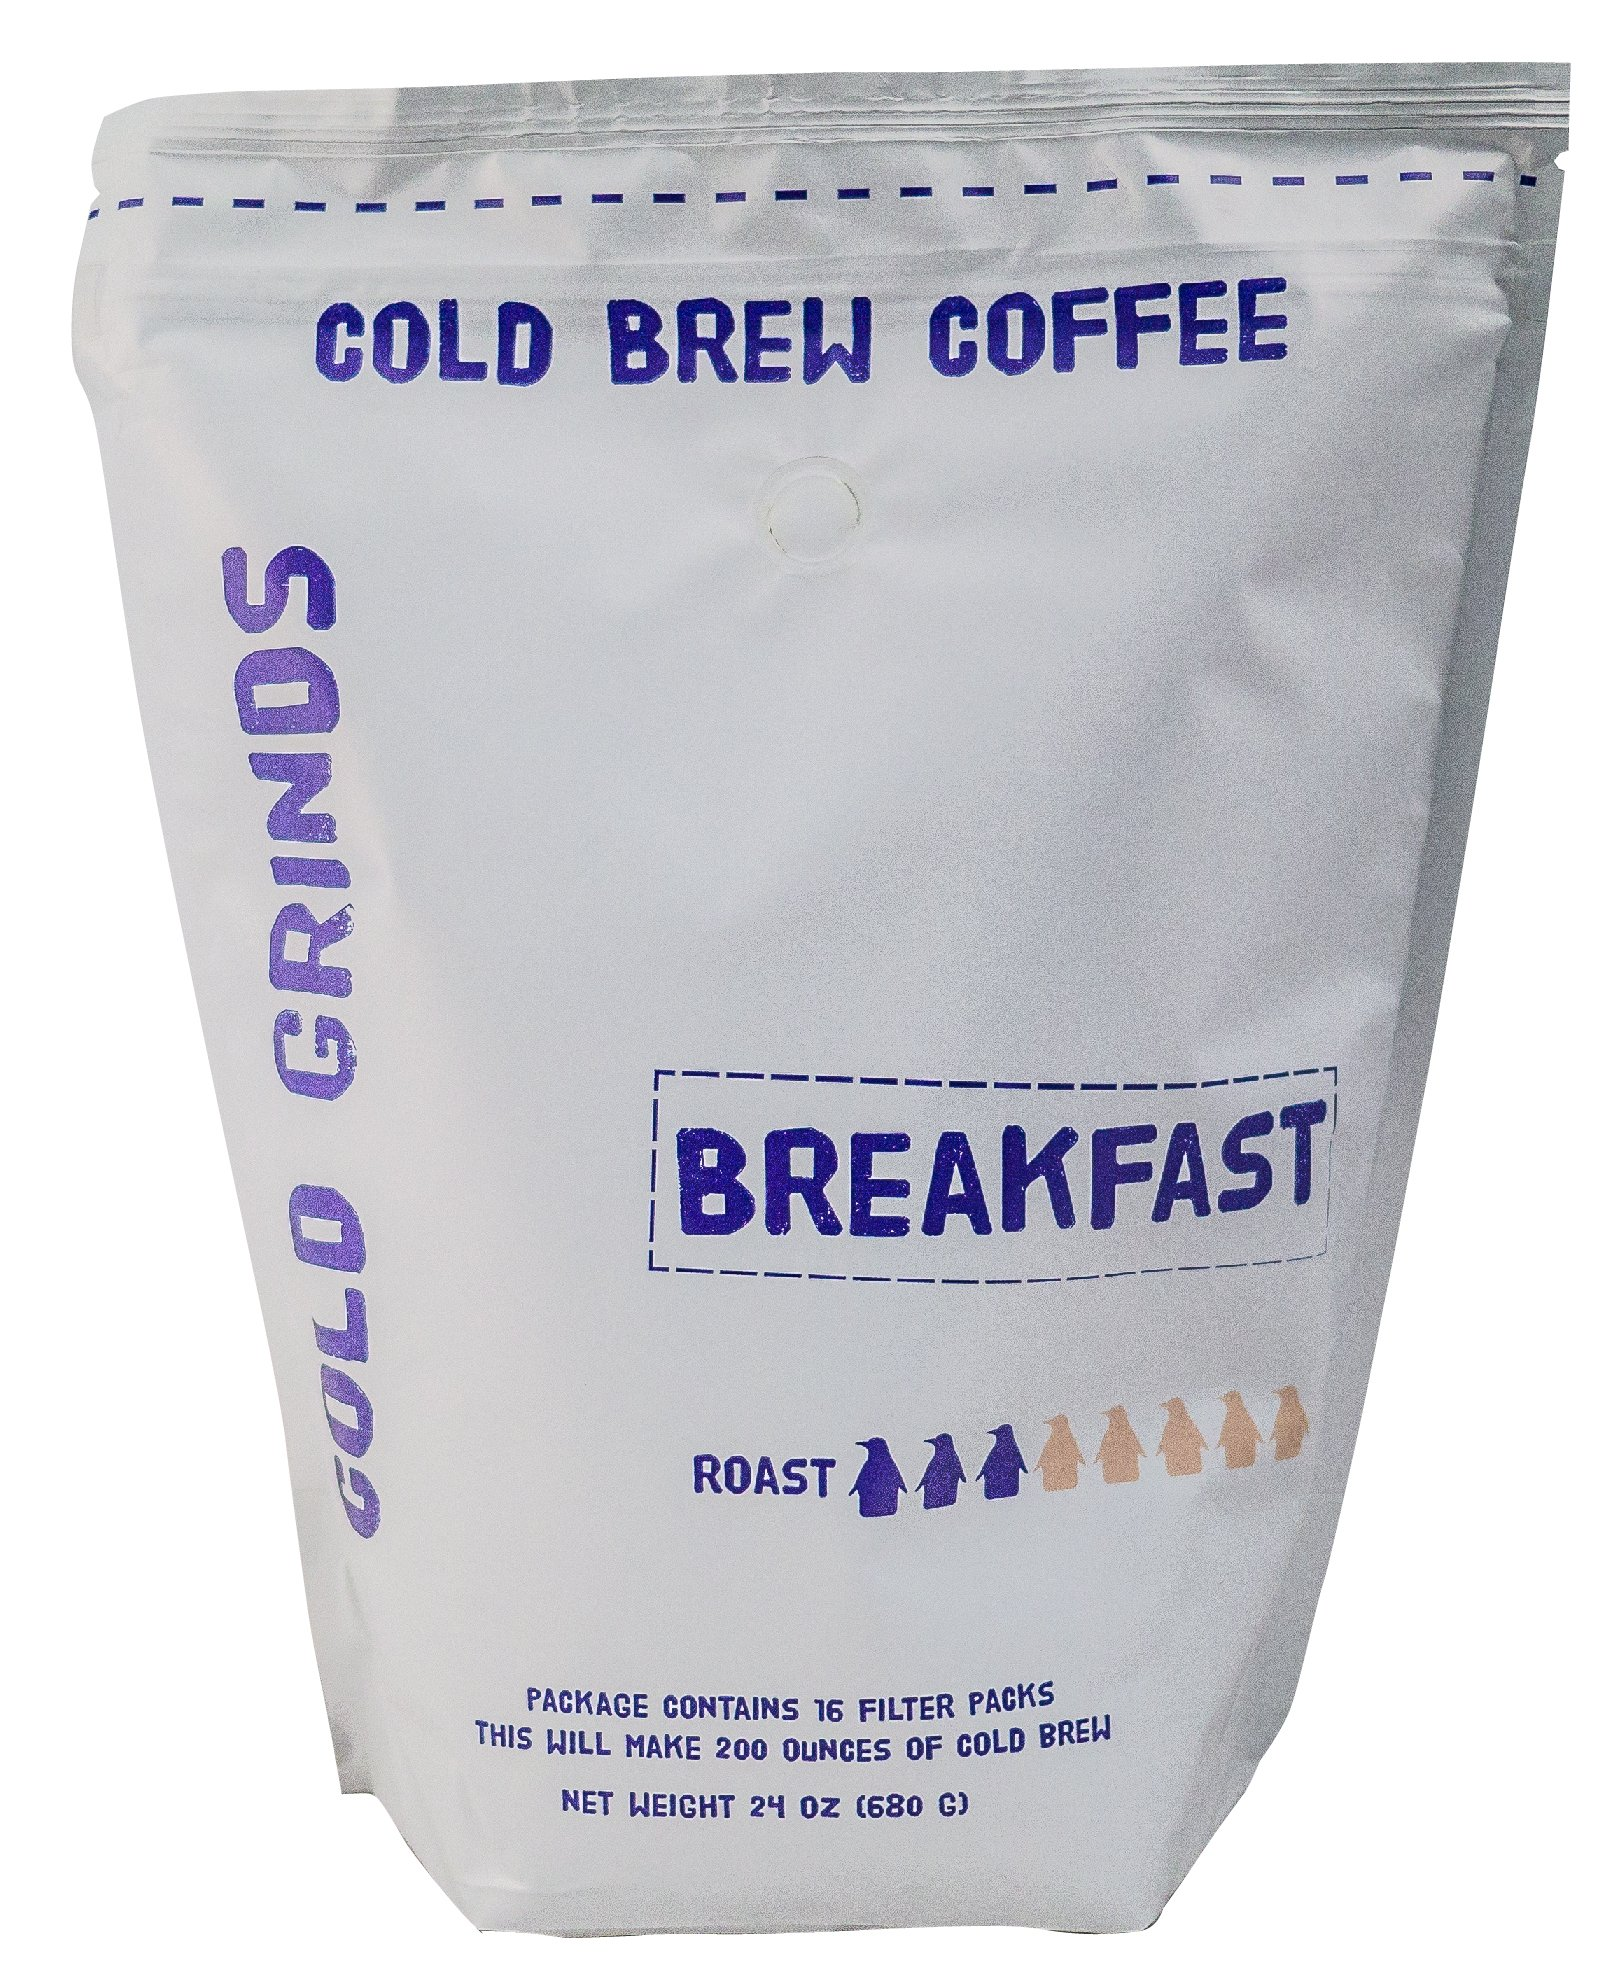 Cold Brew Coffee Packs - Easy at Home Brewing - Our BIG Bag Makes 200 oz of SMOOTH Cold Brew - 66% Less Acidic - Cold Grinds Breakfast Blend (Medium Roast)